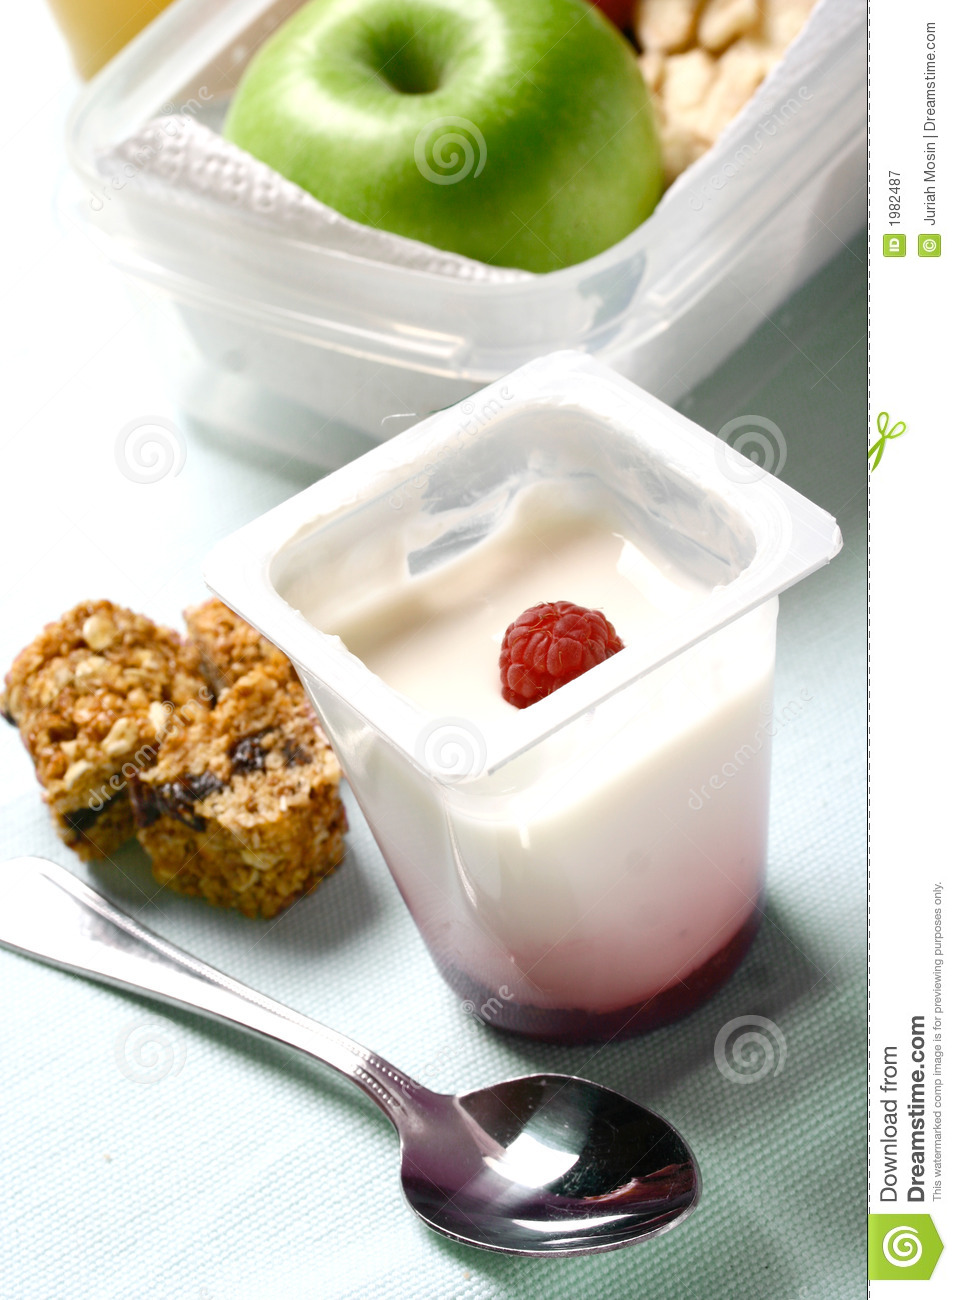 Quick and convenient snack or light lunch